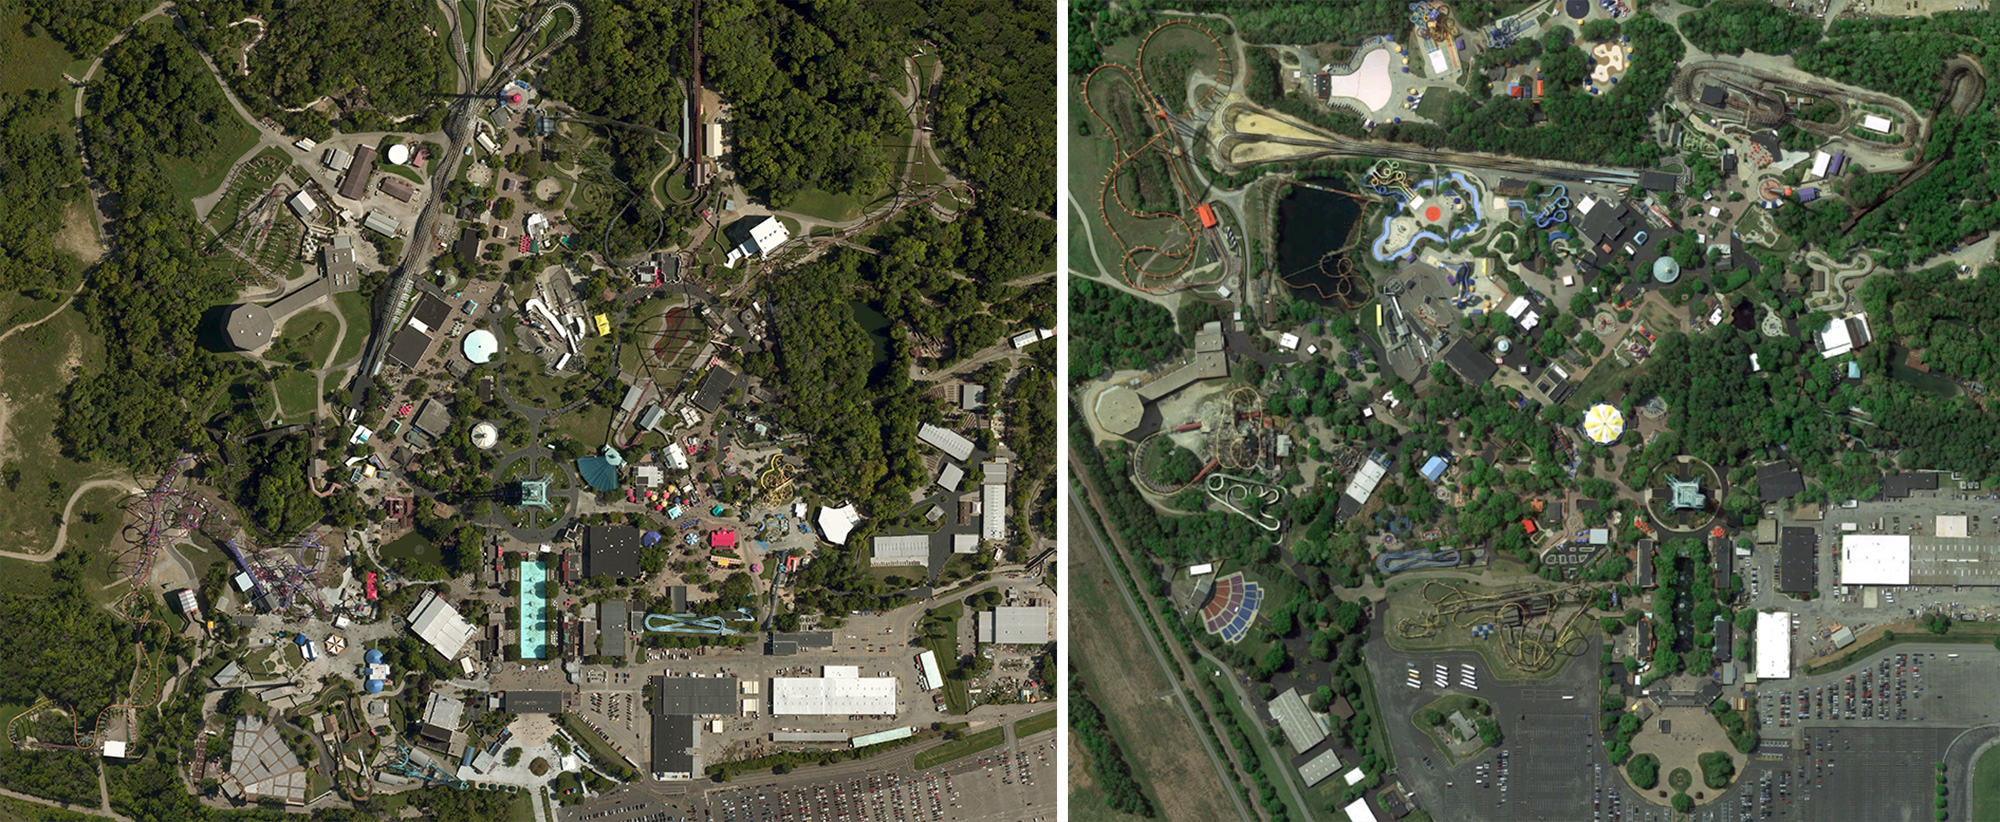 Kings Island (left) as compared with Kings Dominion (right).